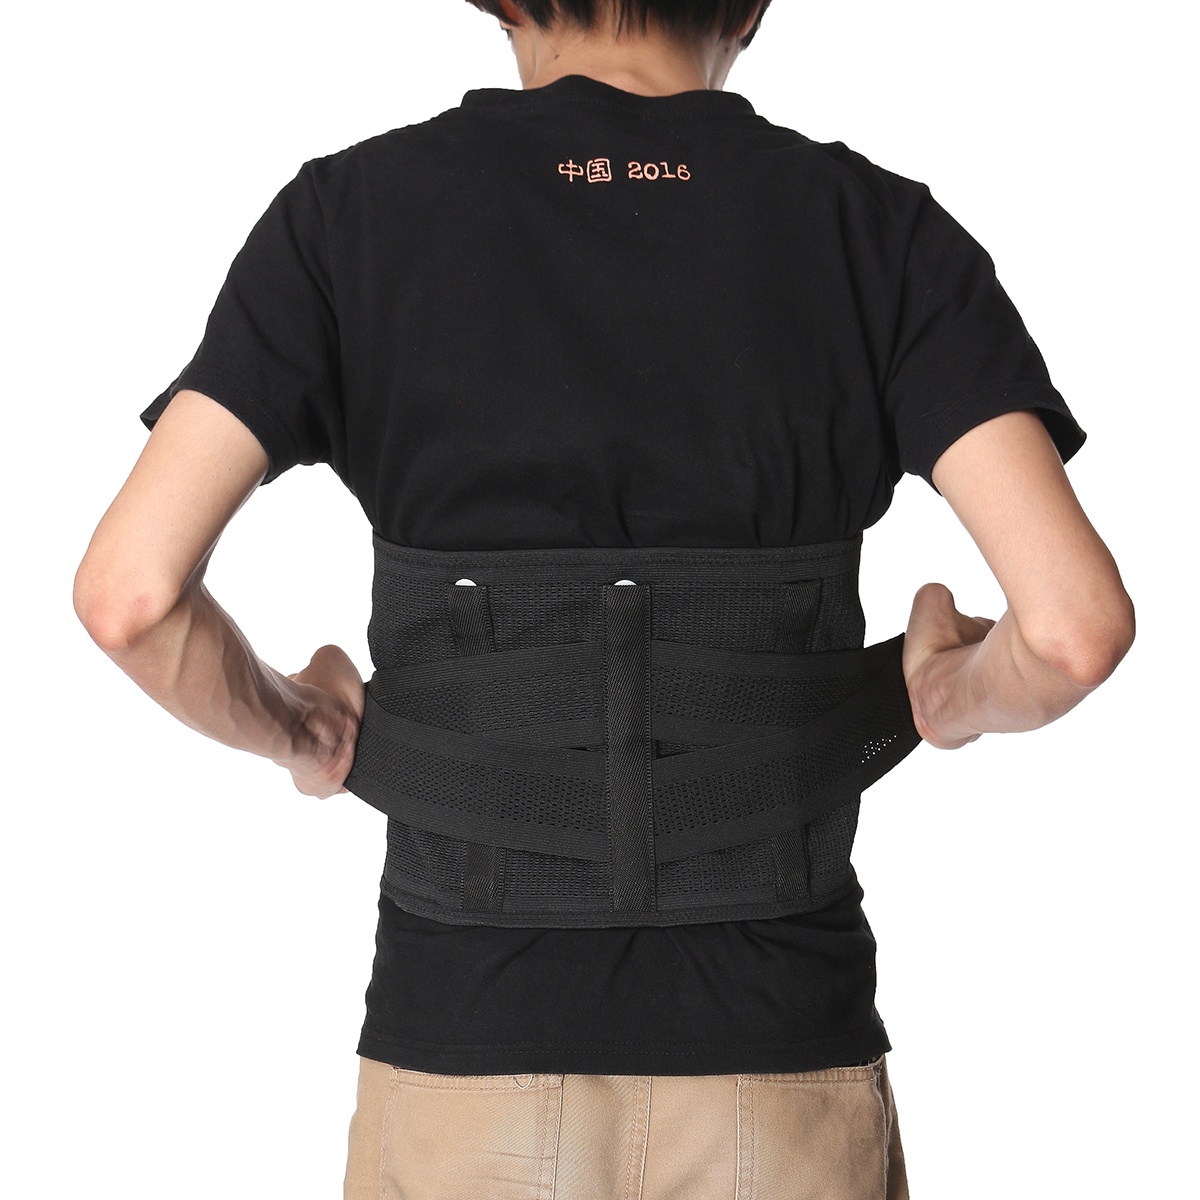 Lumbar Lower Back Support Brace Sport Waist Trainer Belt Body Shaper